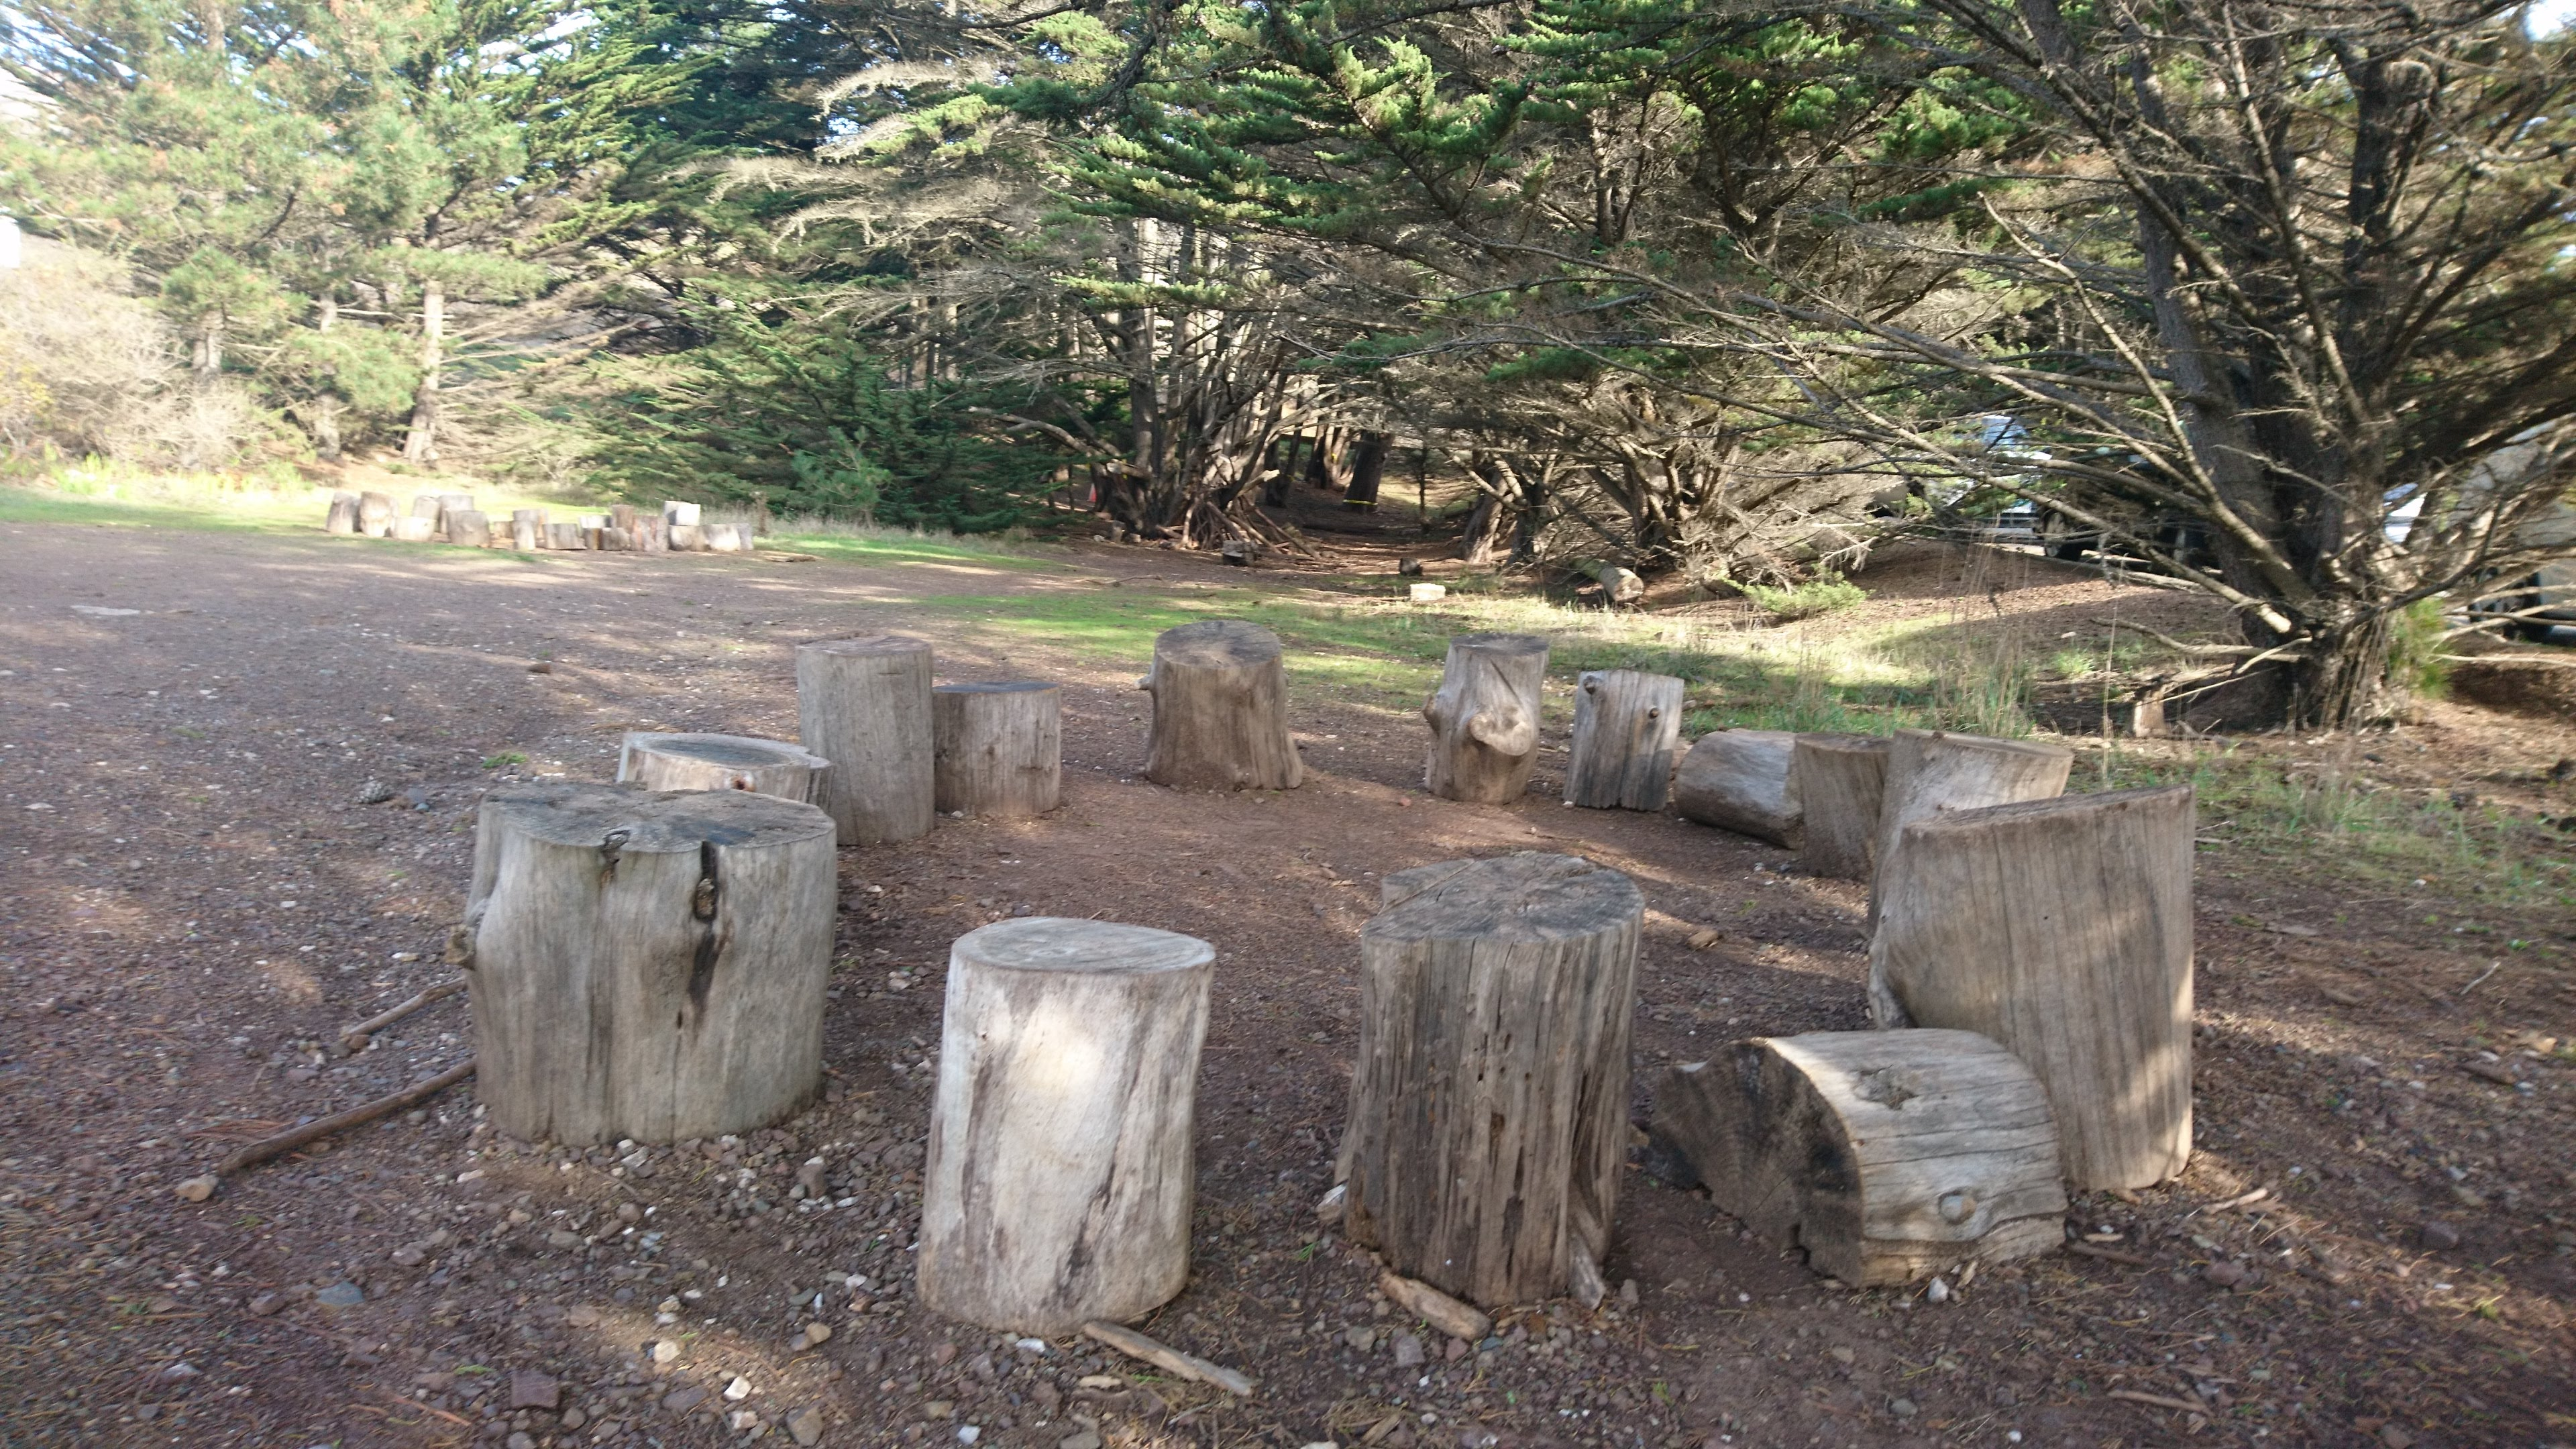 Photo of several seats made of stumps in a ring